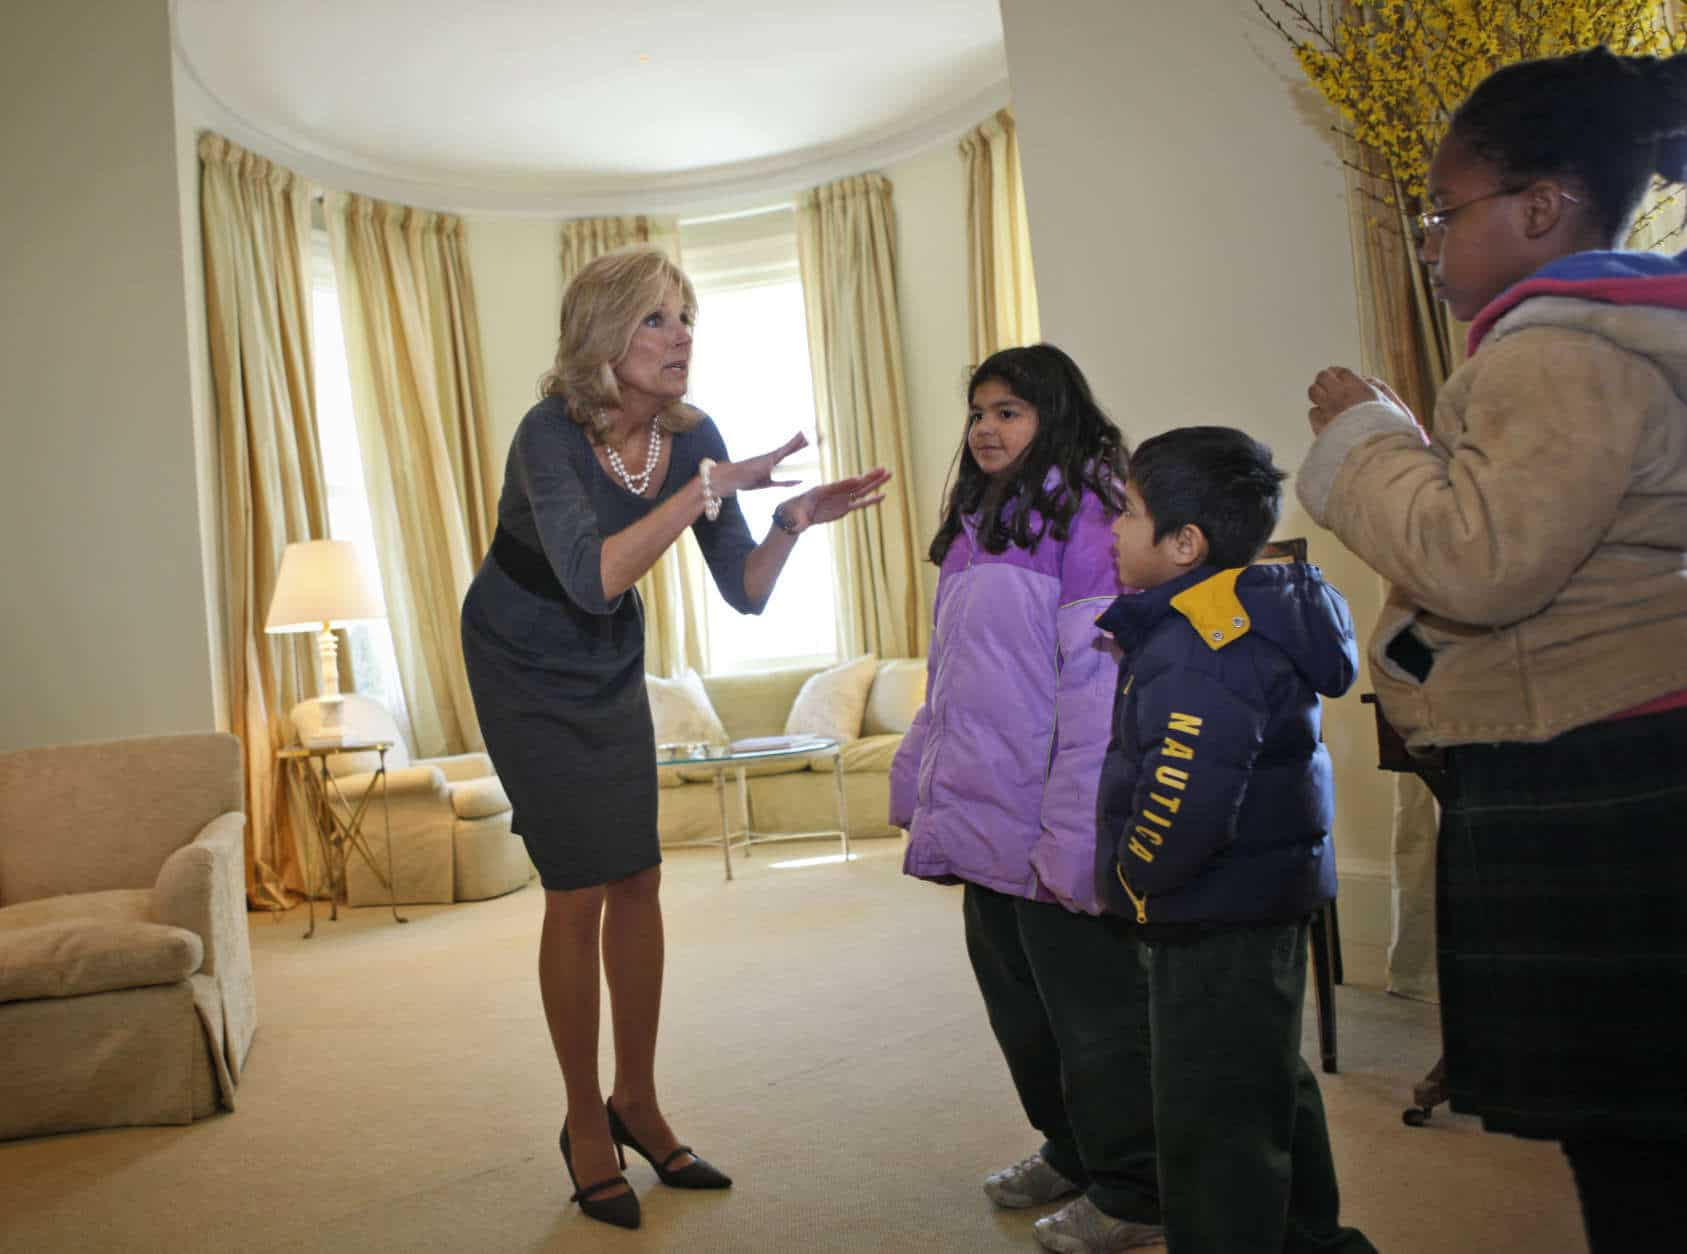 Jill Biden, wife of Vice President Joe Biden opens their new home at the U.S. Naval Observatory, to elementary school children from across the D.C. area, Wednesday, Jan. 21, 2009, in Washington. (AP Photo/Lawrence Jackson)